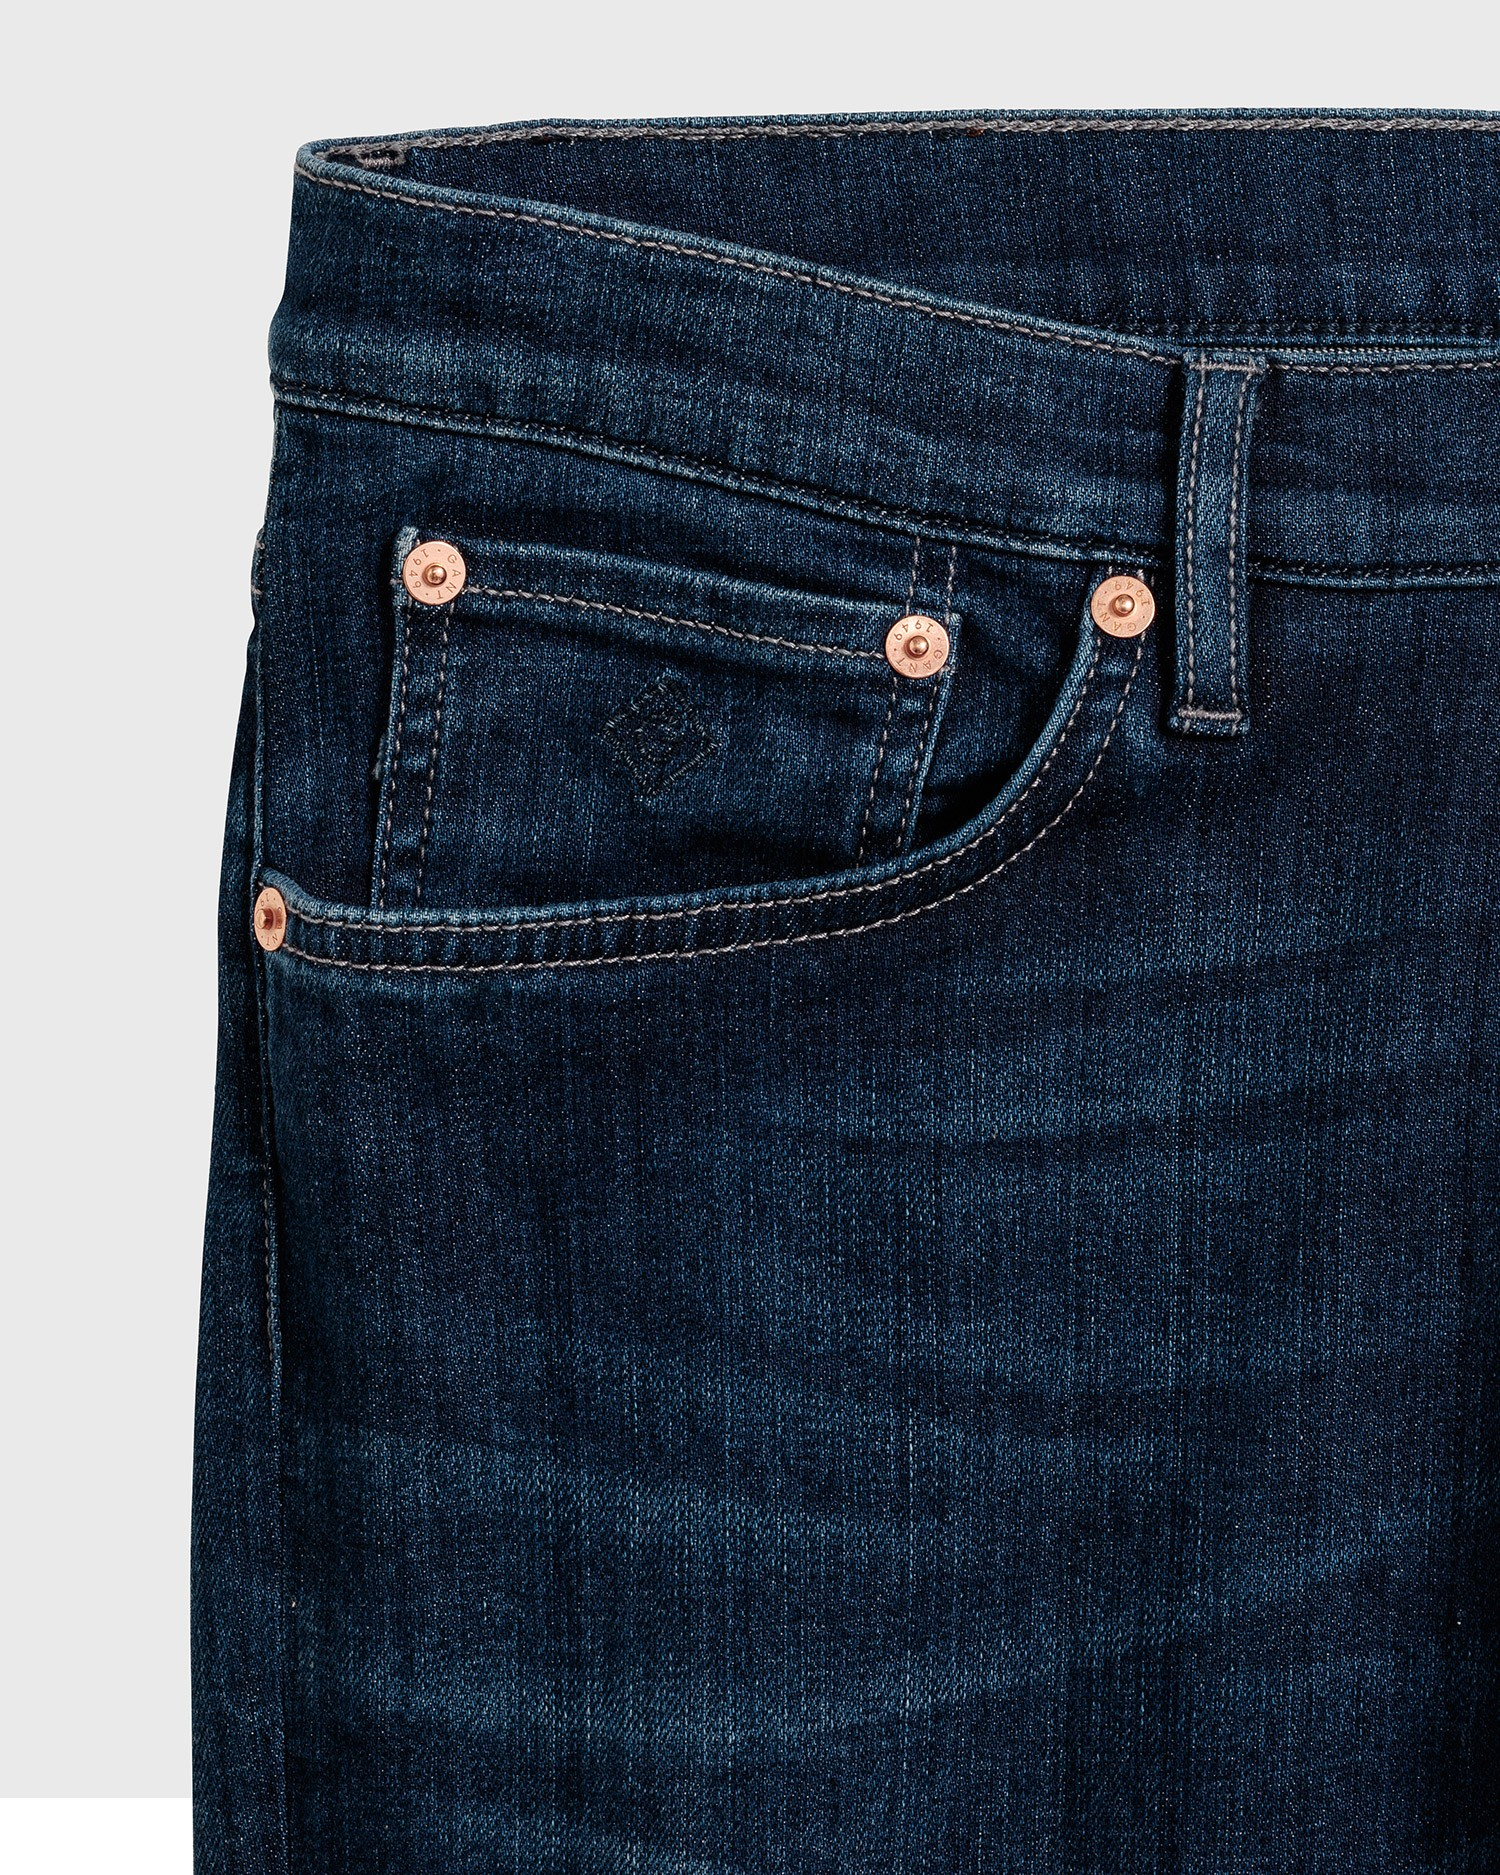 GANT Men's Slim Bistretch Jeans - 1000163